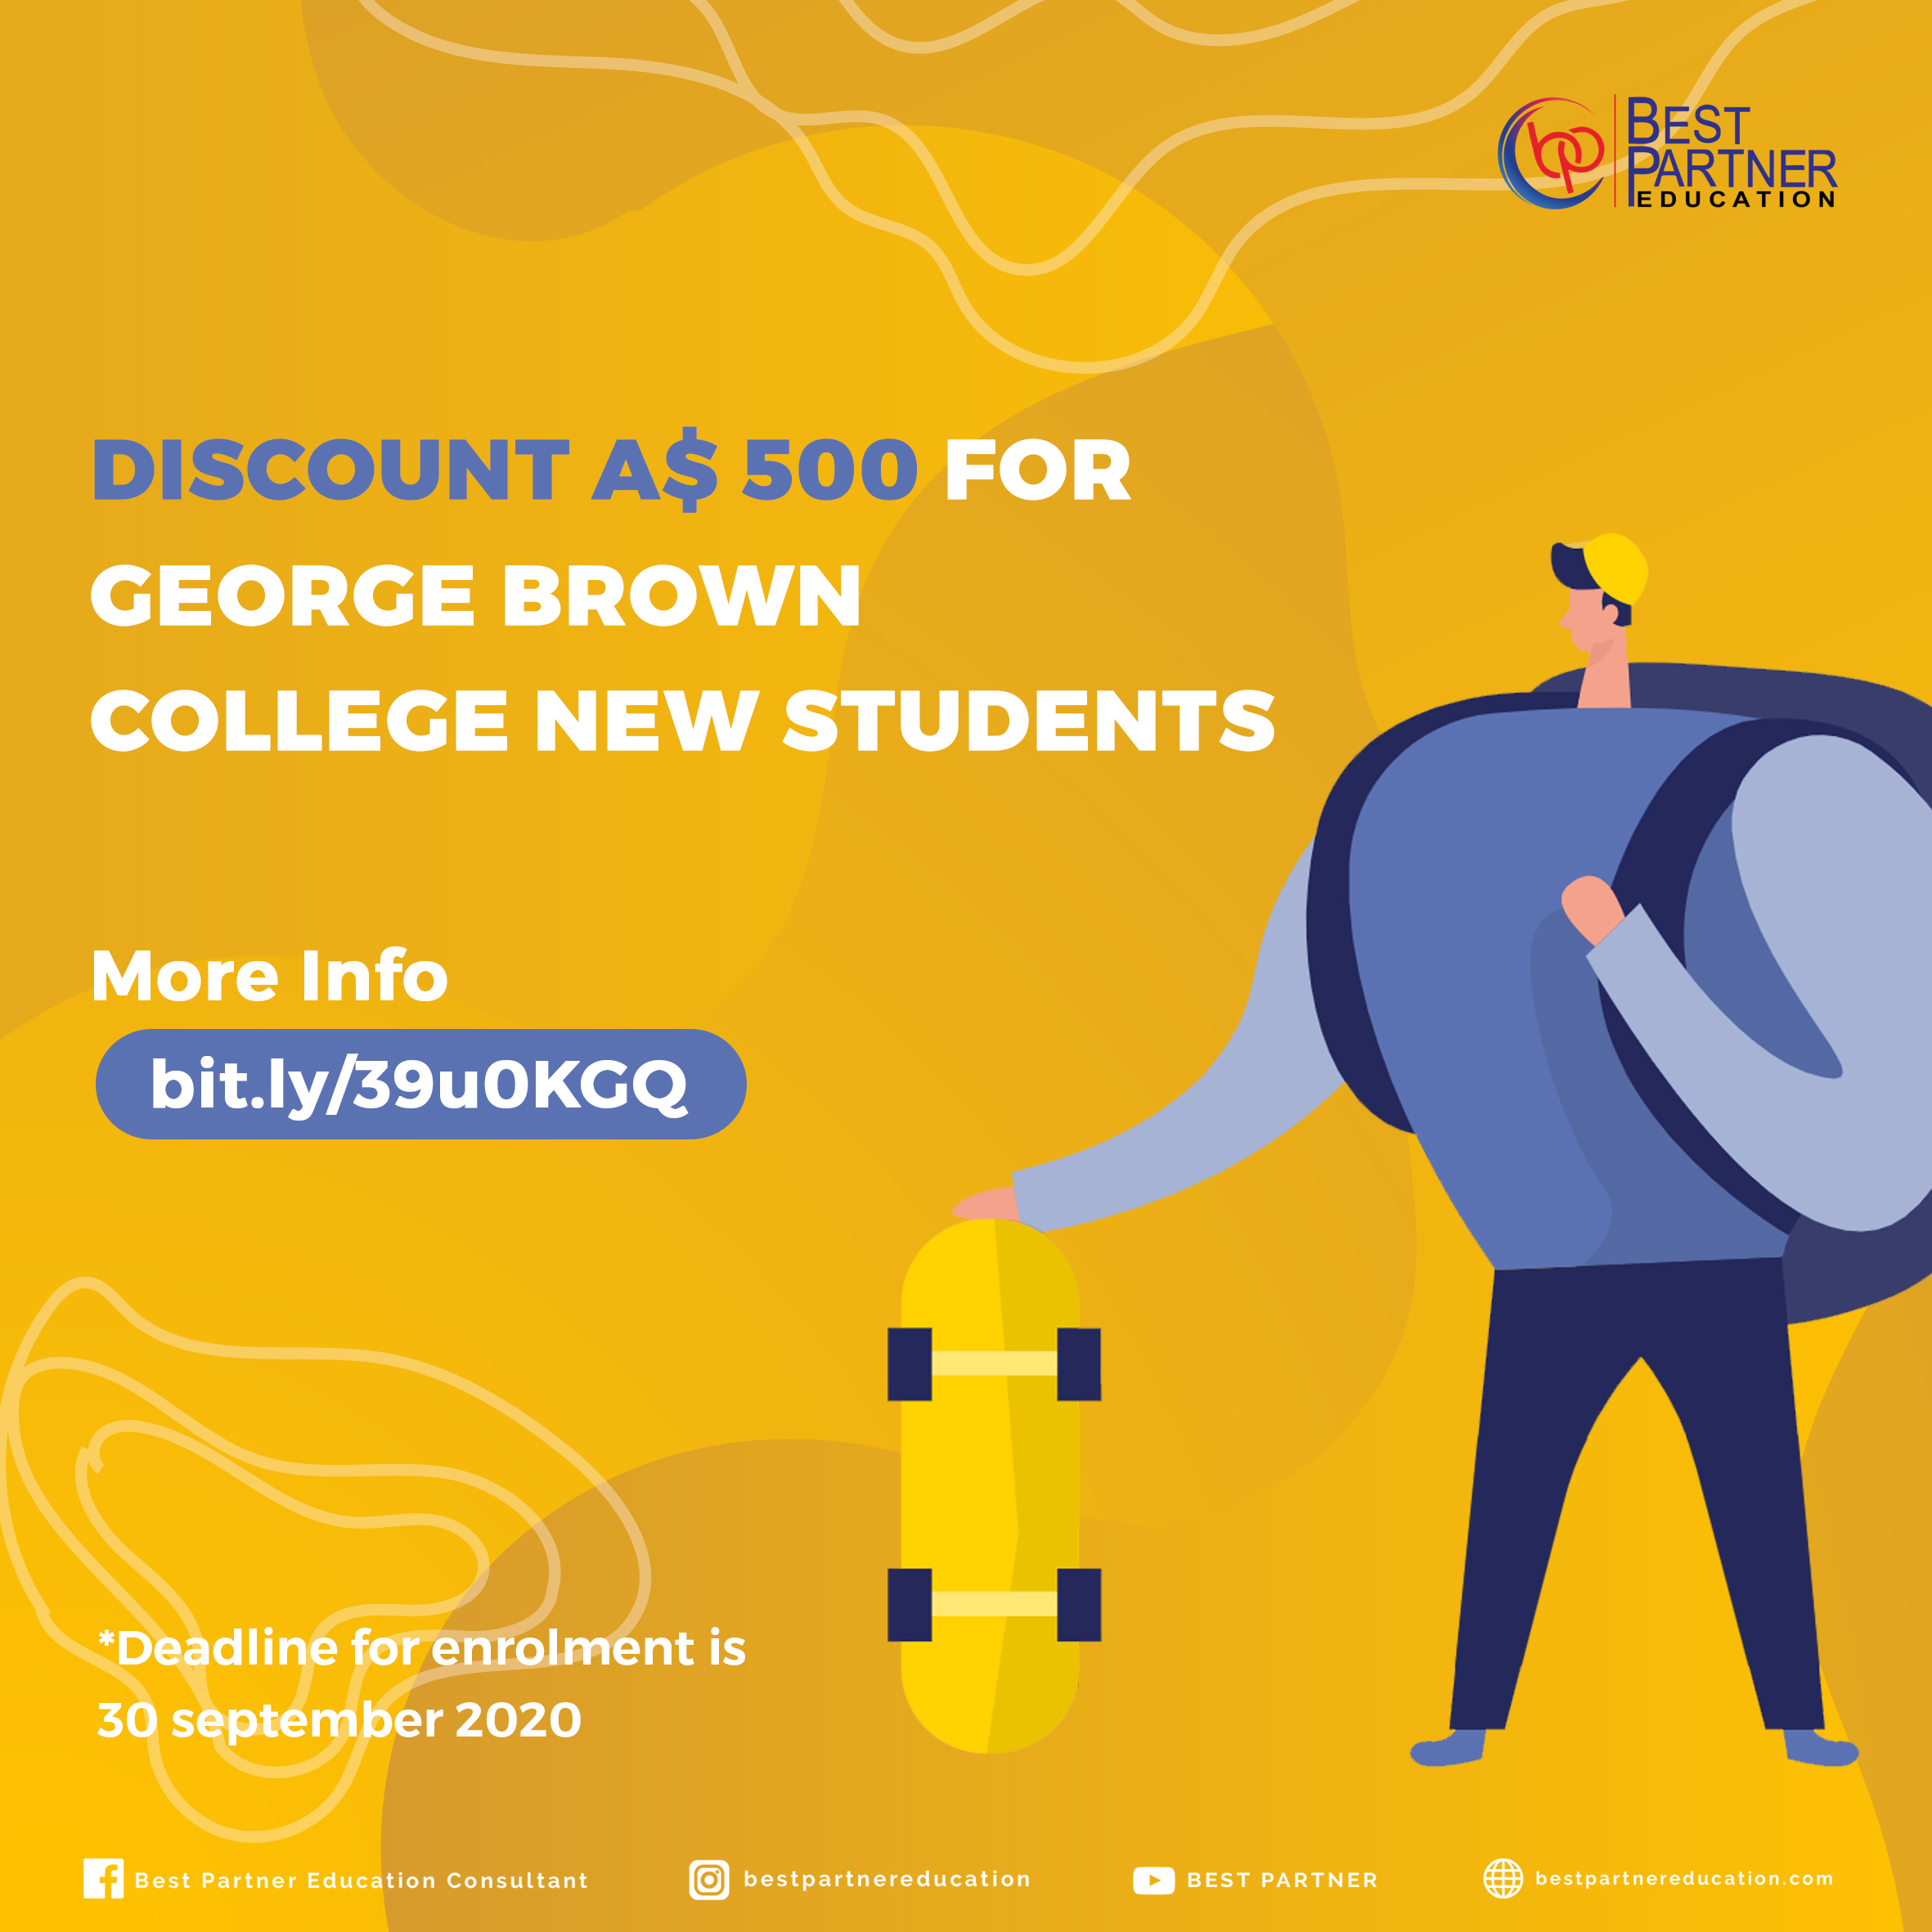 DISCOUNT A$ 500 FOR GEORGE BROWN COLLEGE NEW STUDENTS